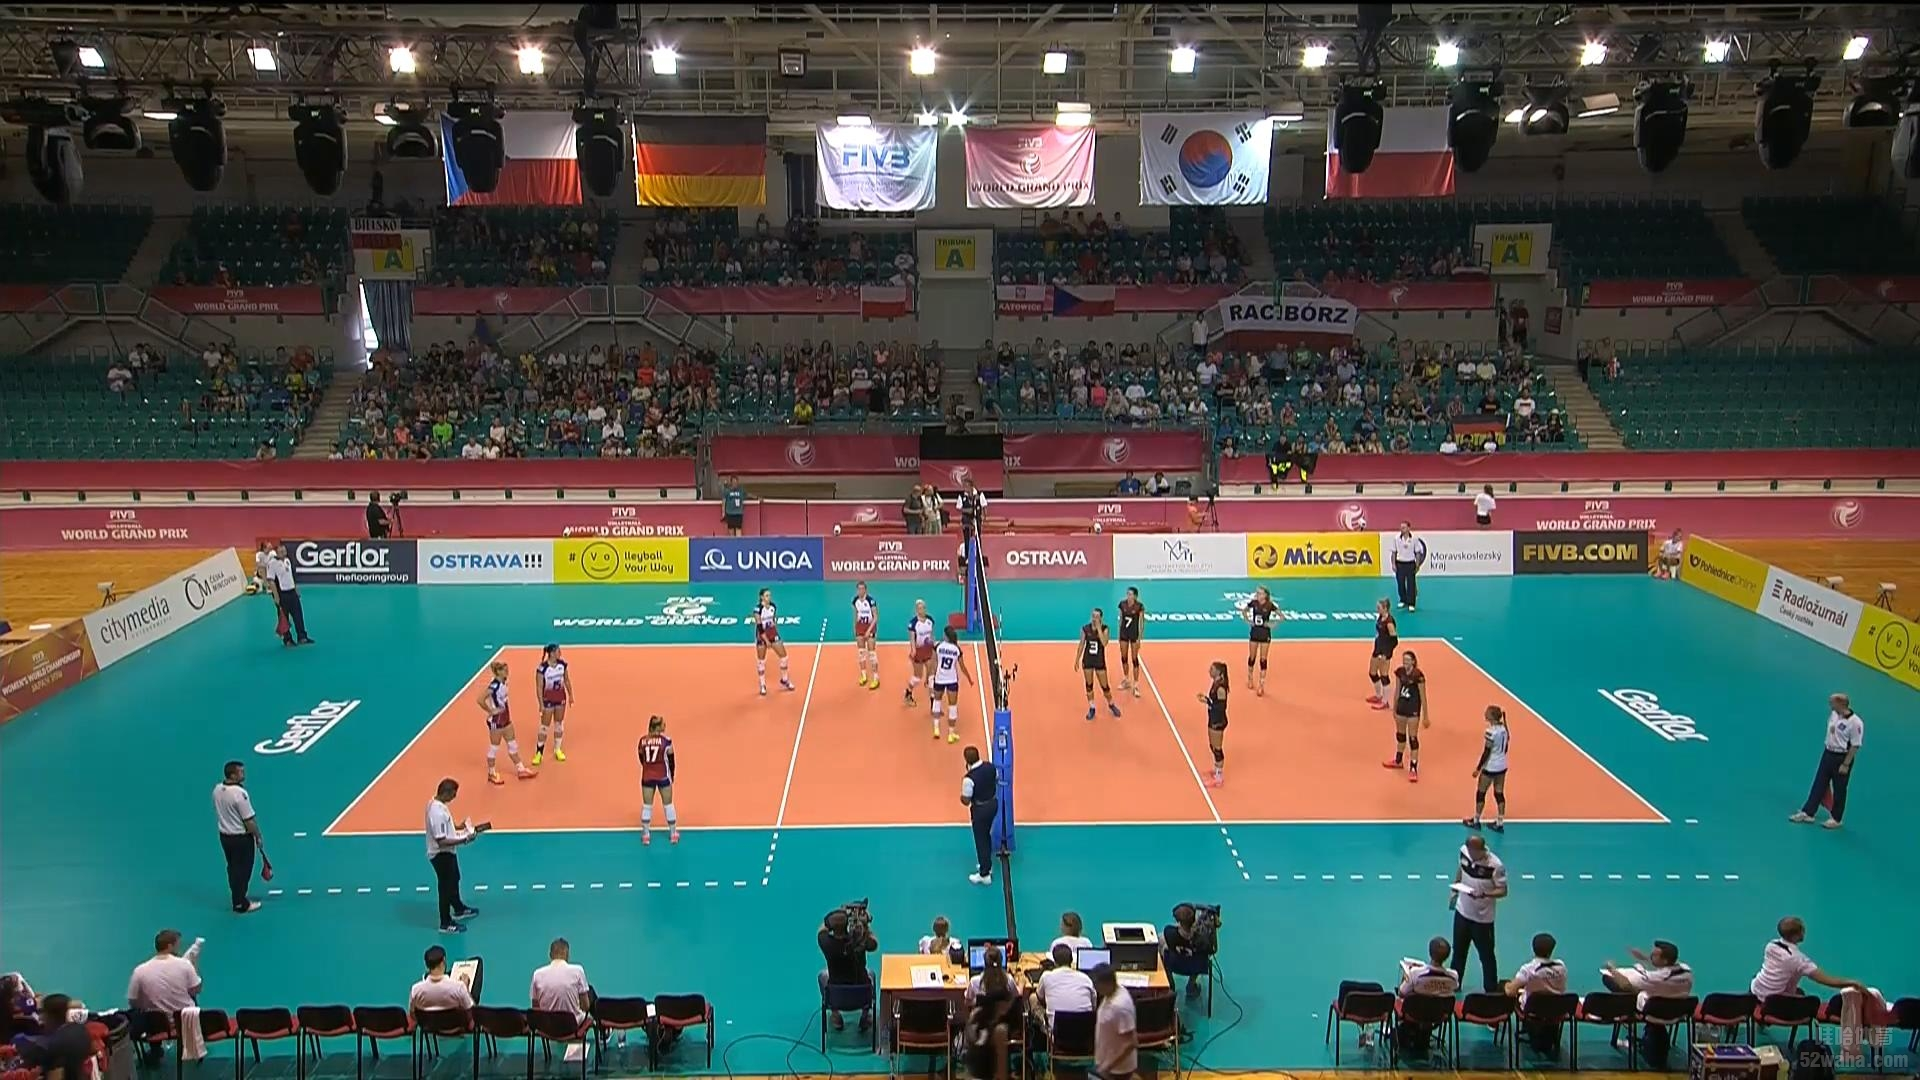 Germany v Czech Republic - Group 2 2017 FIVB Volleyball World Grand Prix_2017073.jpg